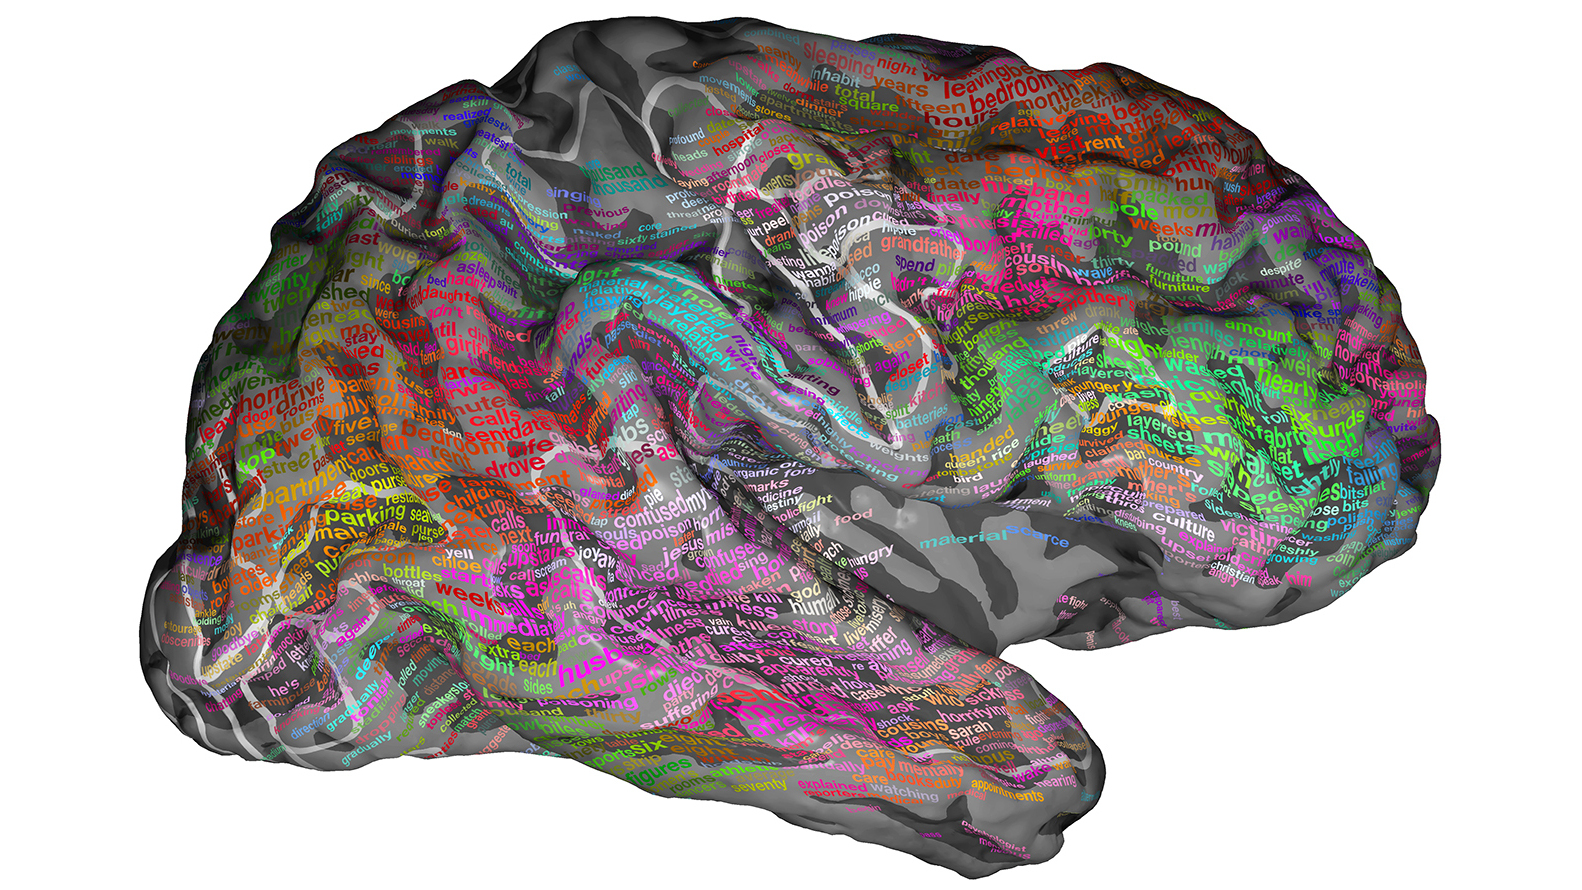 Scans Show 'Brain Dictionary' Groups Words By Meaning